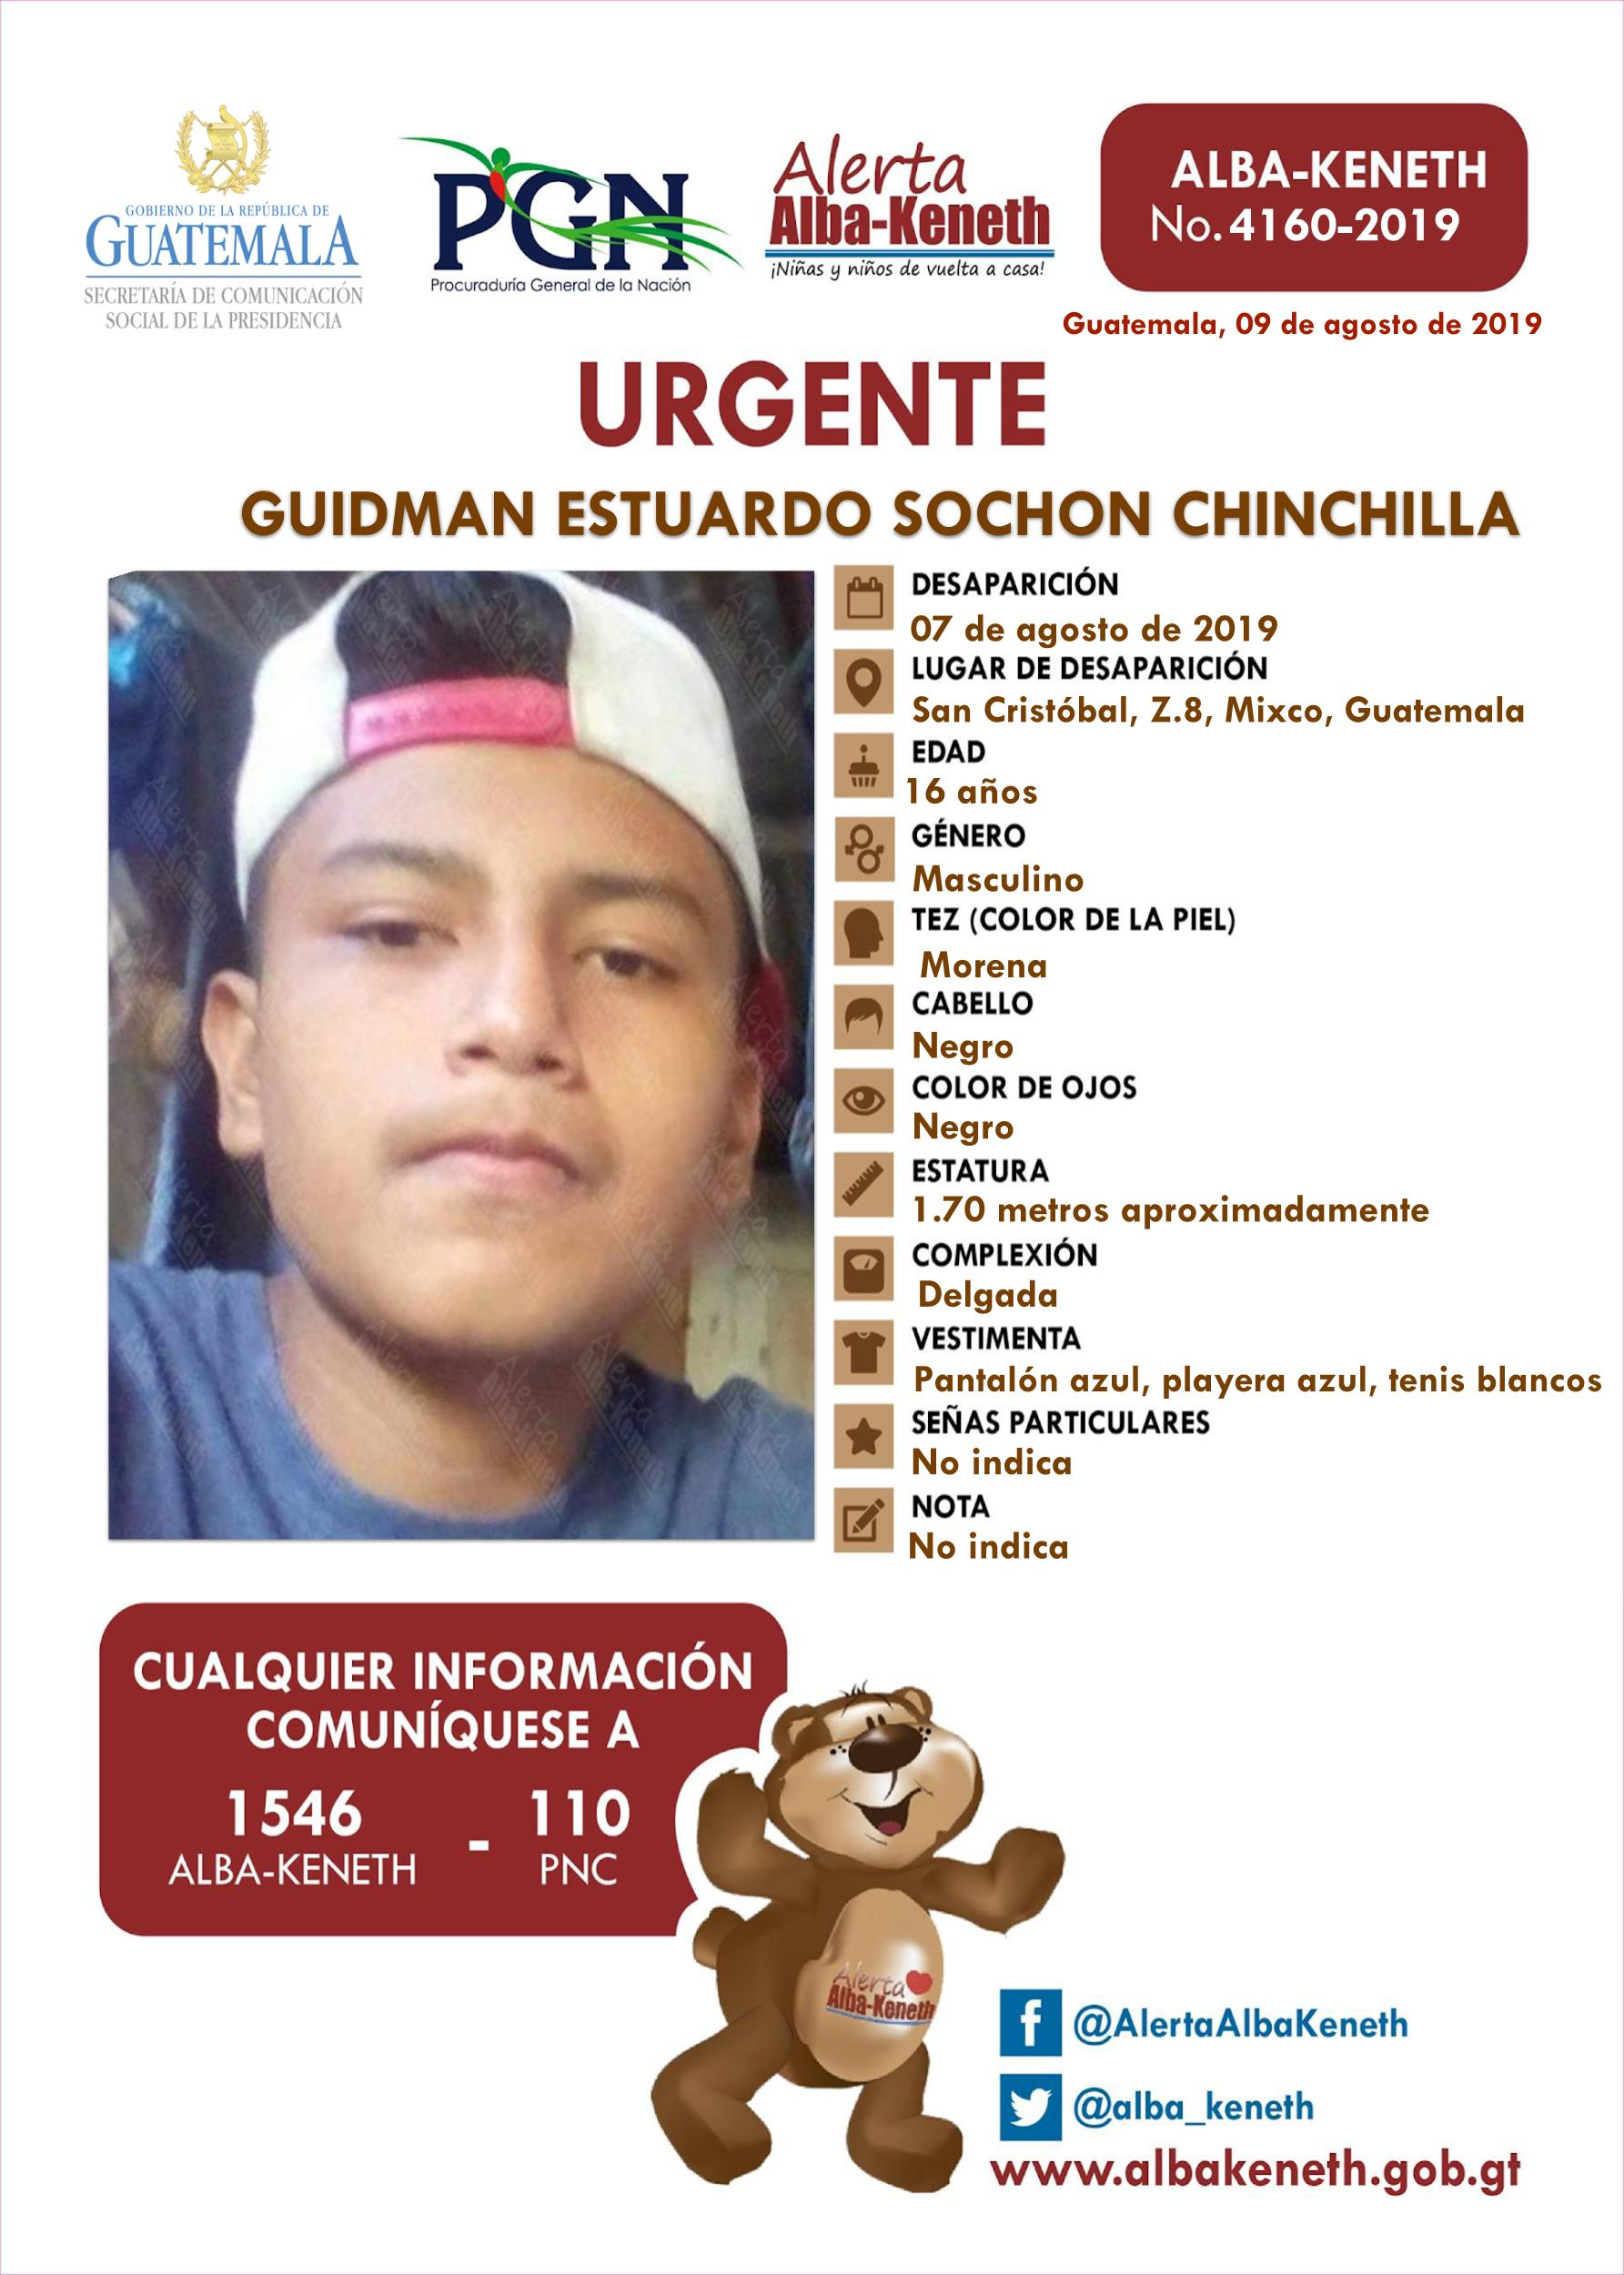 Guidman Estuardo Sochon Chinchilla